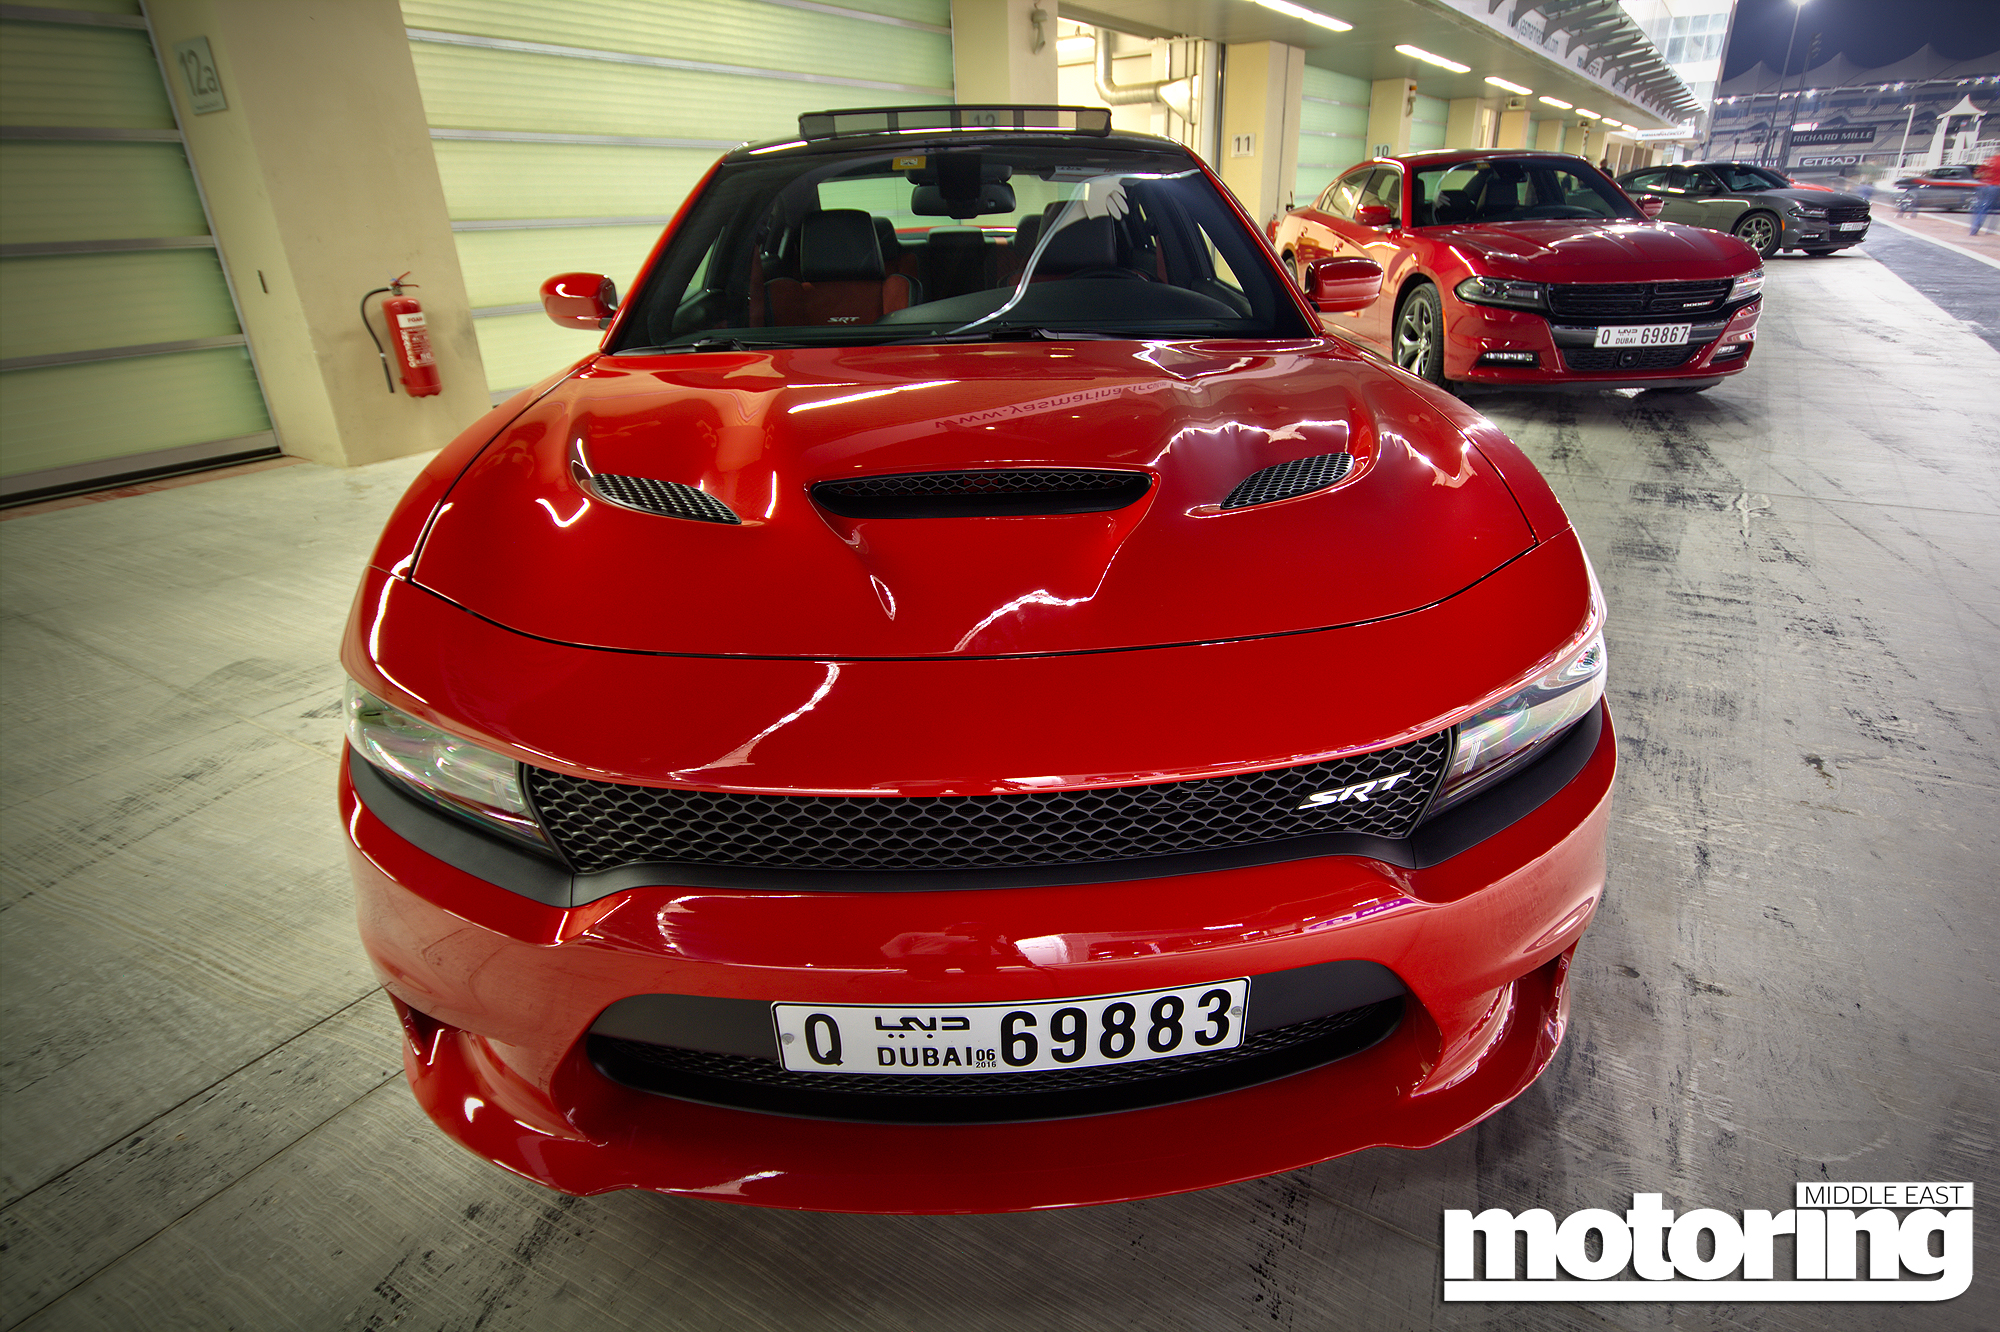 2015 Dodge Challenger Charger Hellcat Driven At Yas